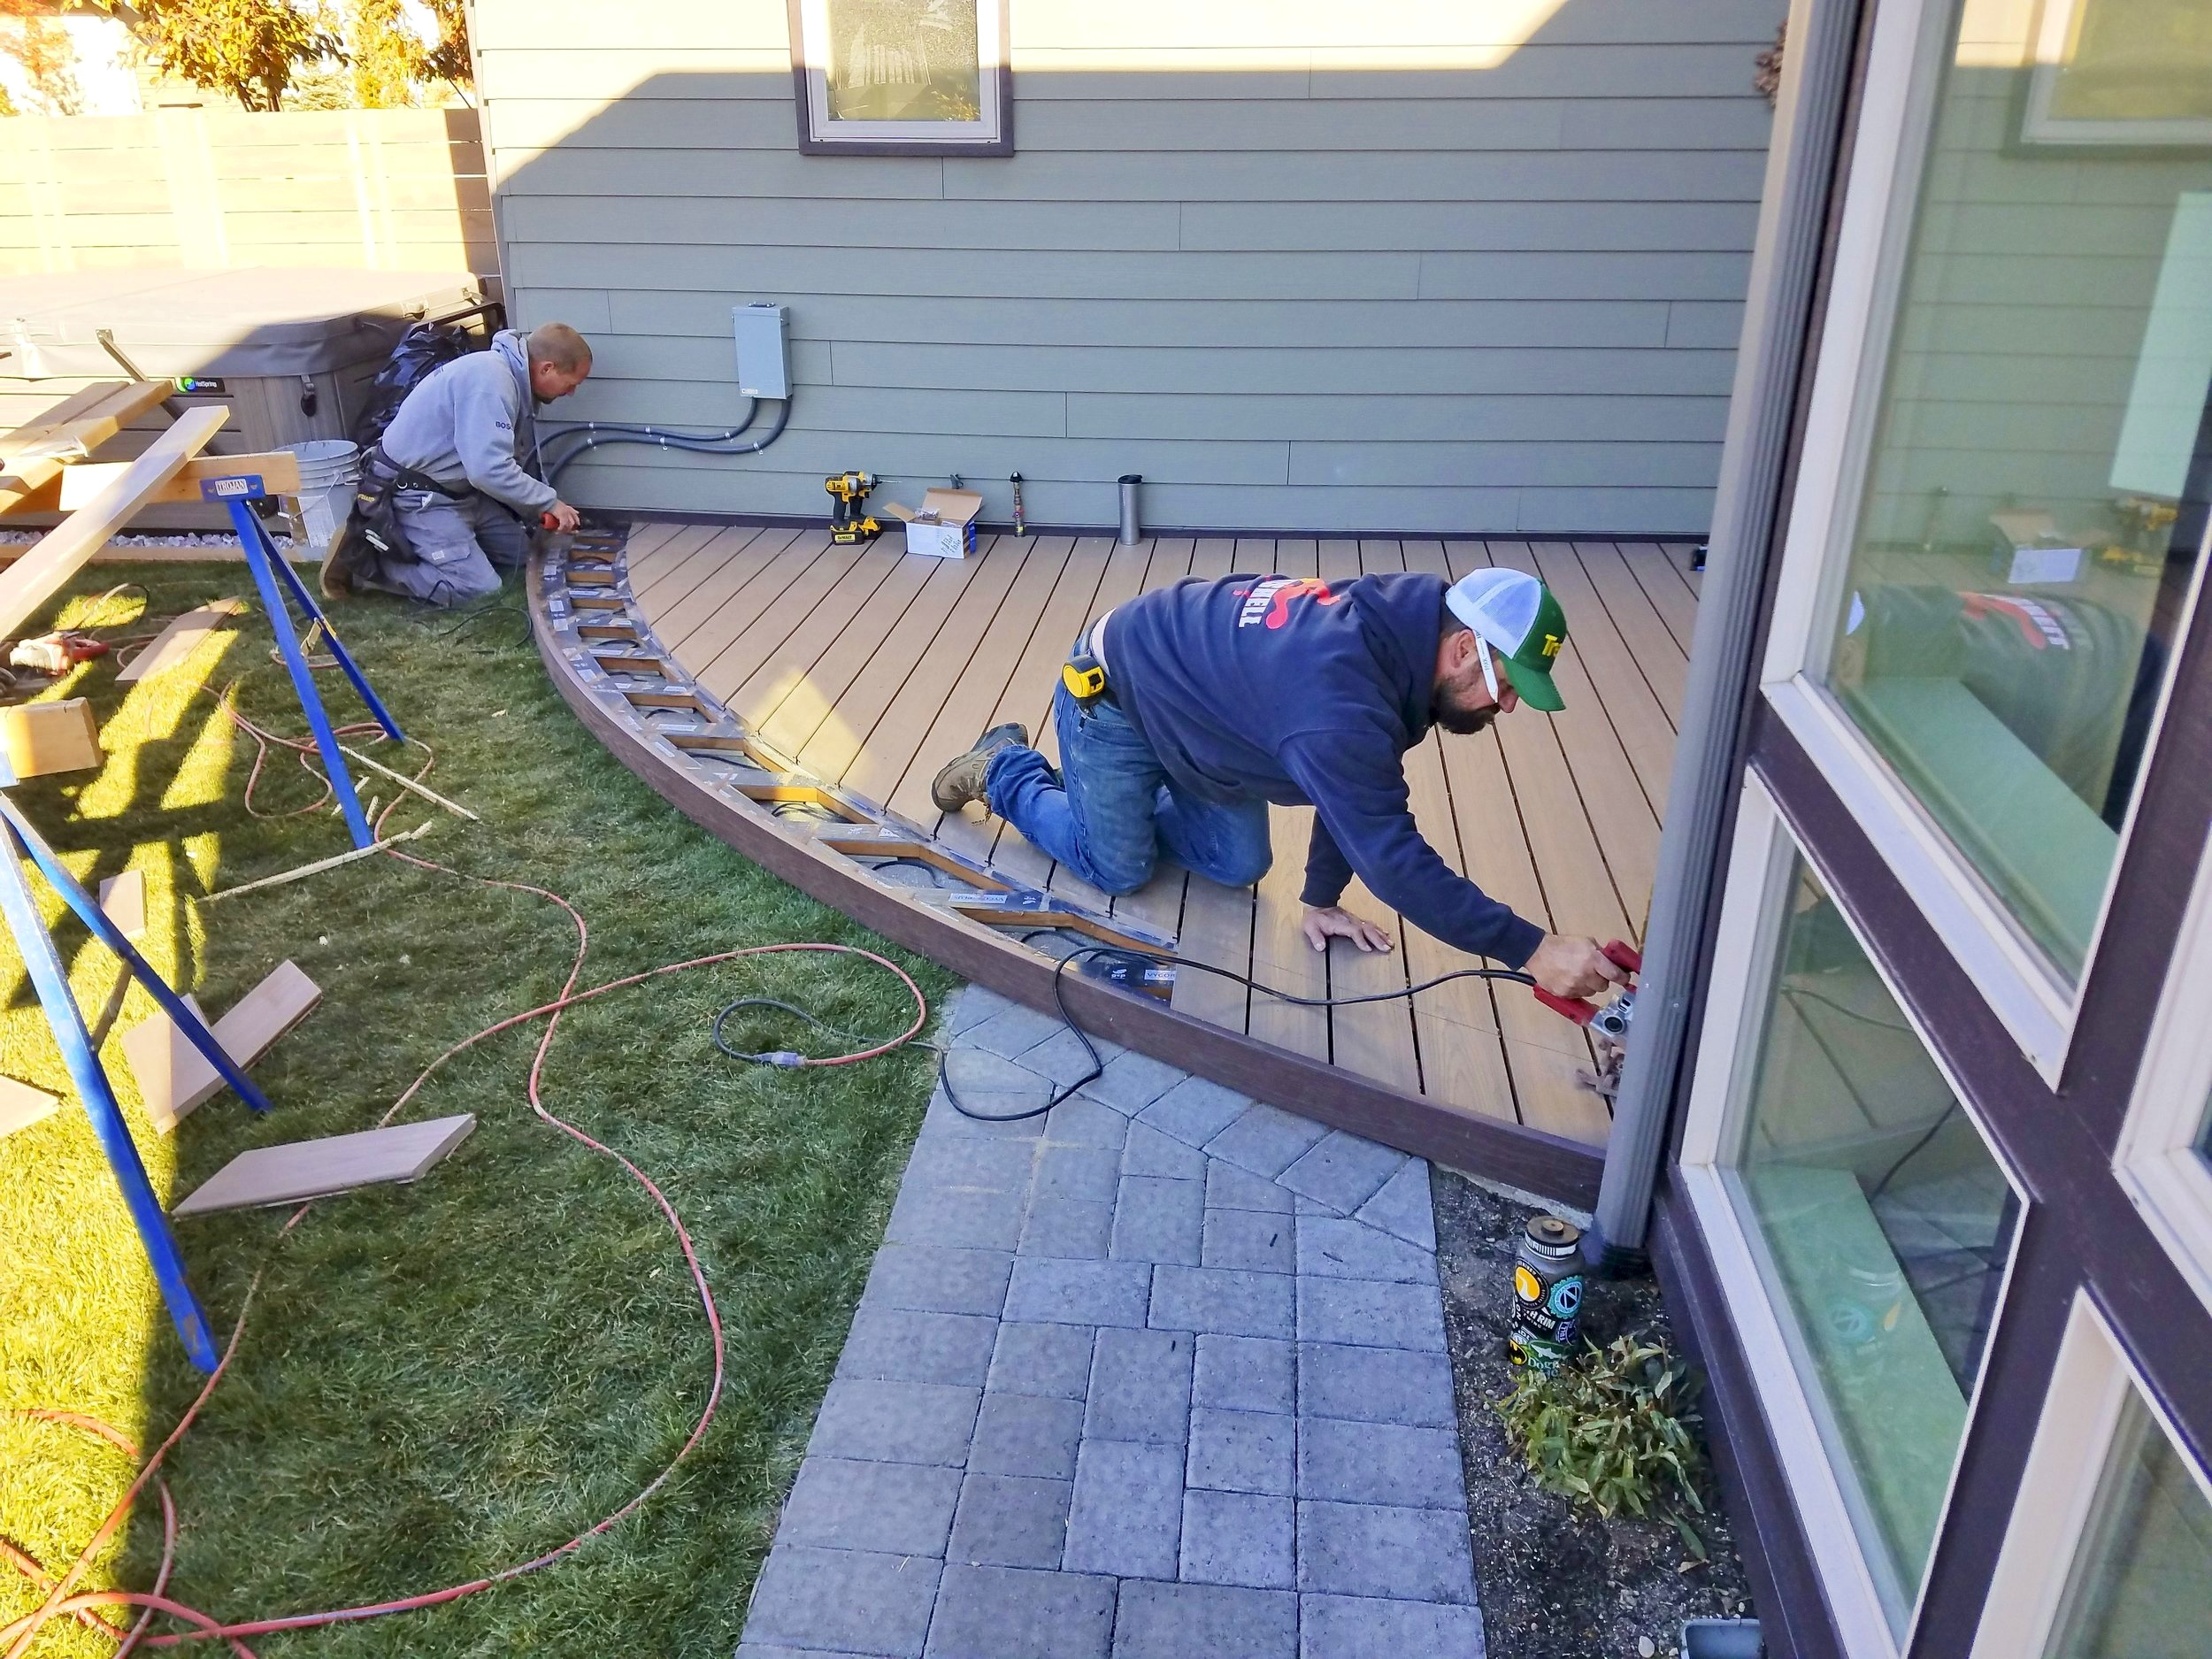 Install - After a heat bent PVC decking plank has cooled it will hold its shape permanently and can be installed in the same manner as any other straight PVC plank.